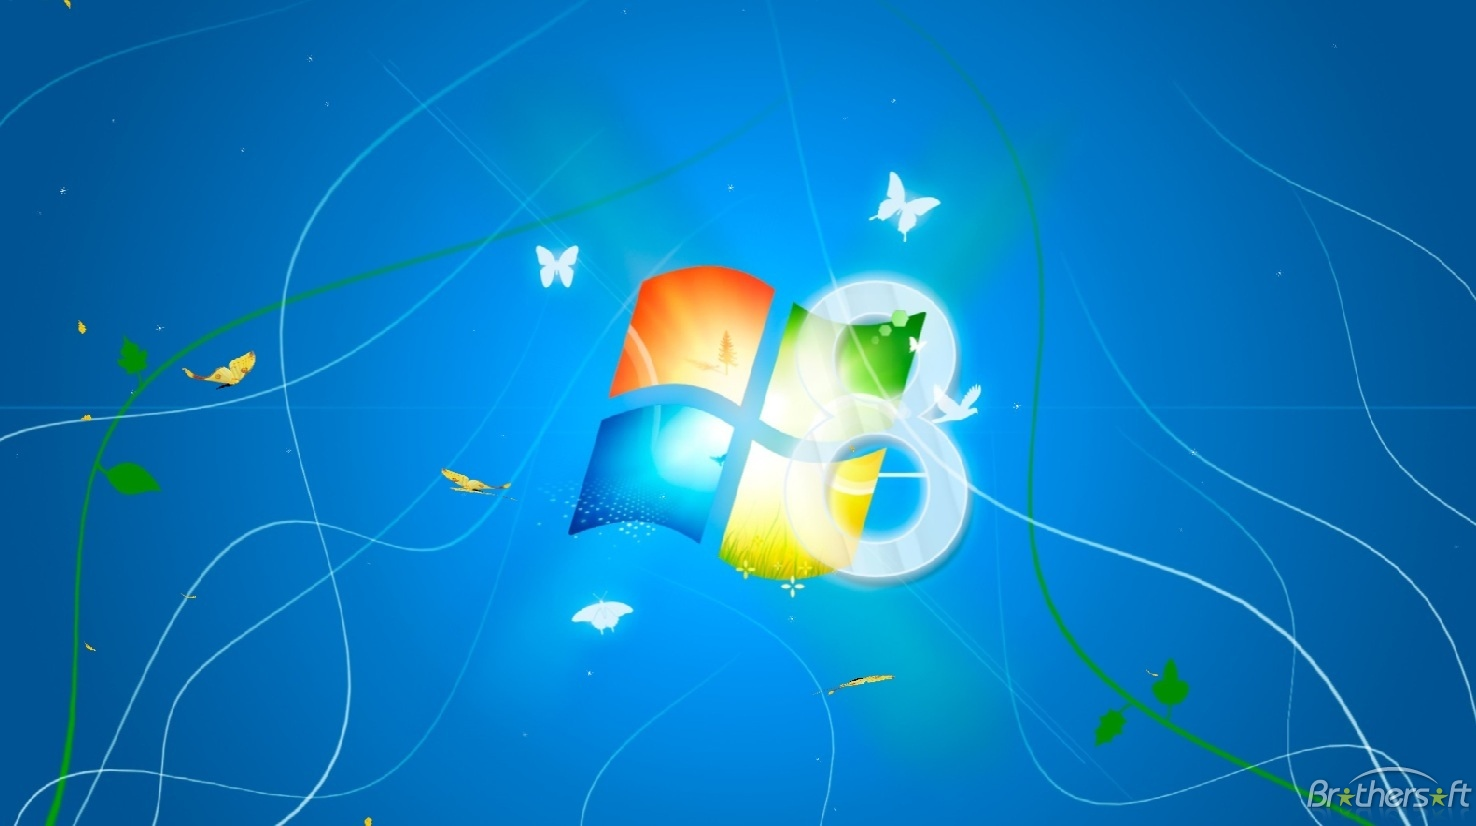 3d Animation Wallpaper For Windows 8